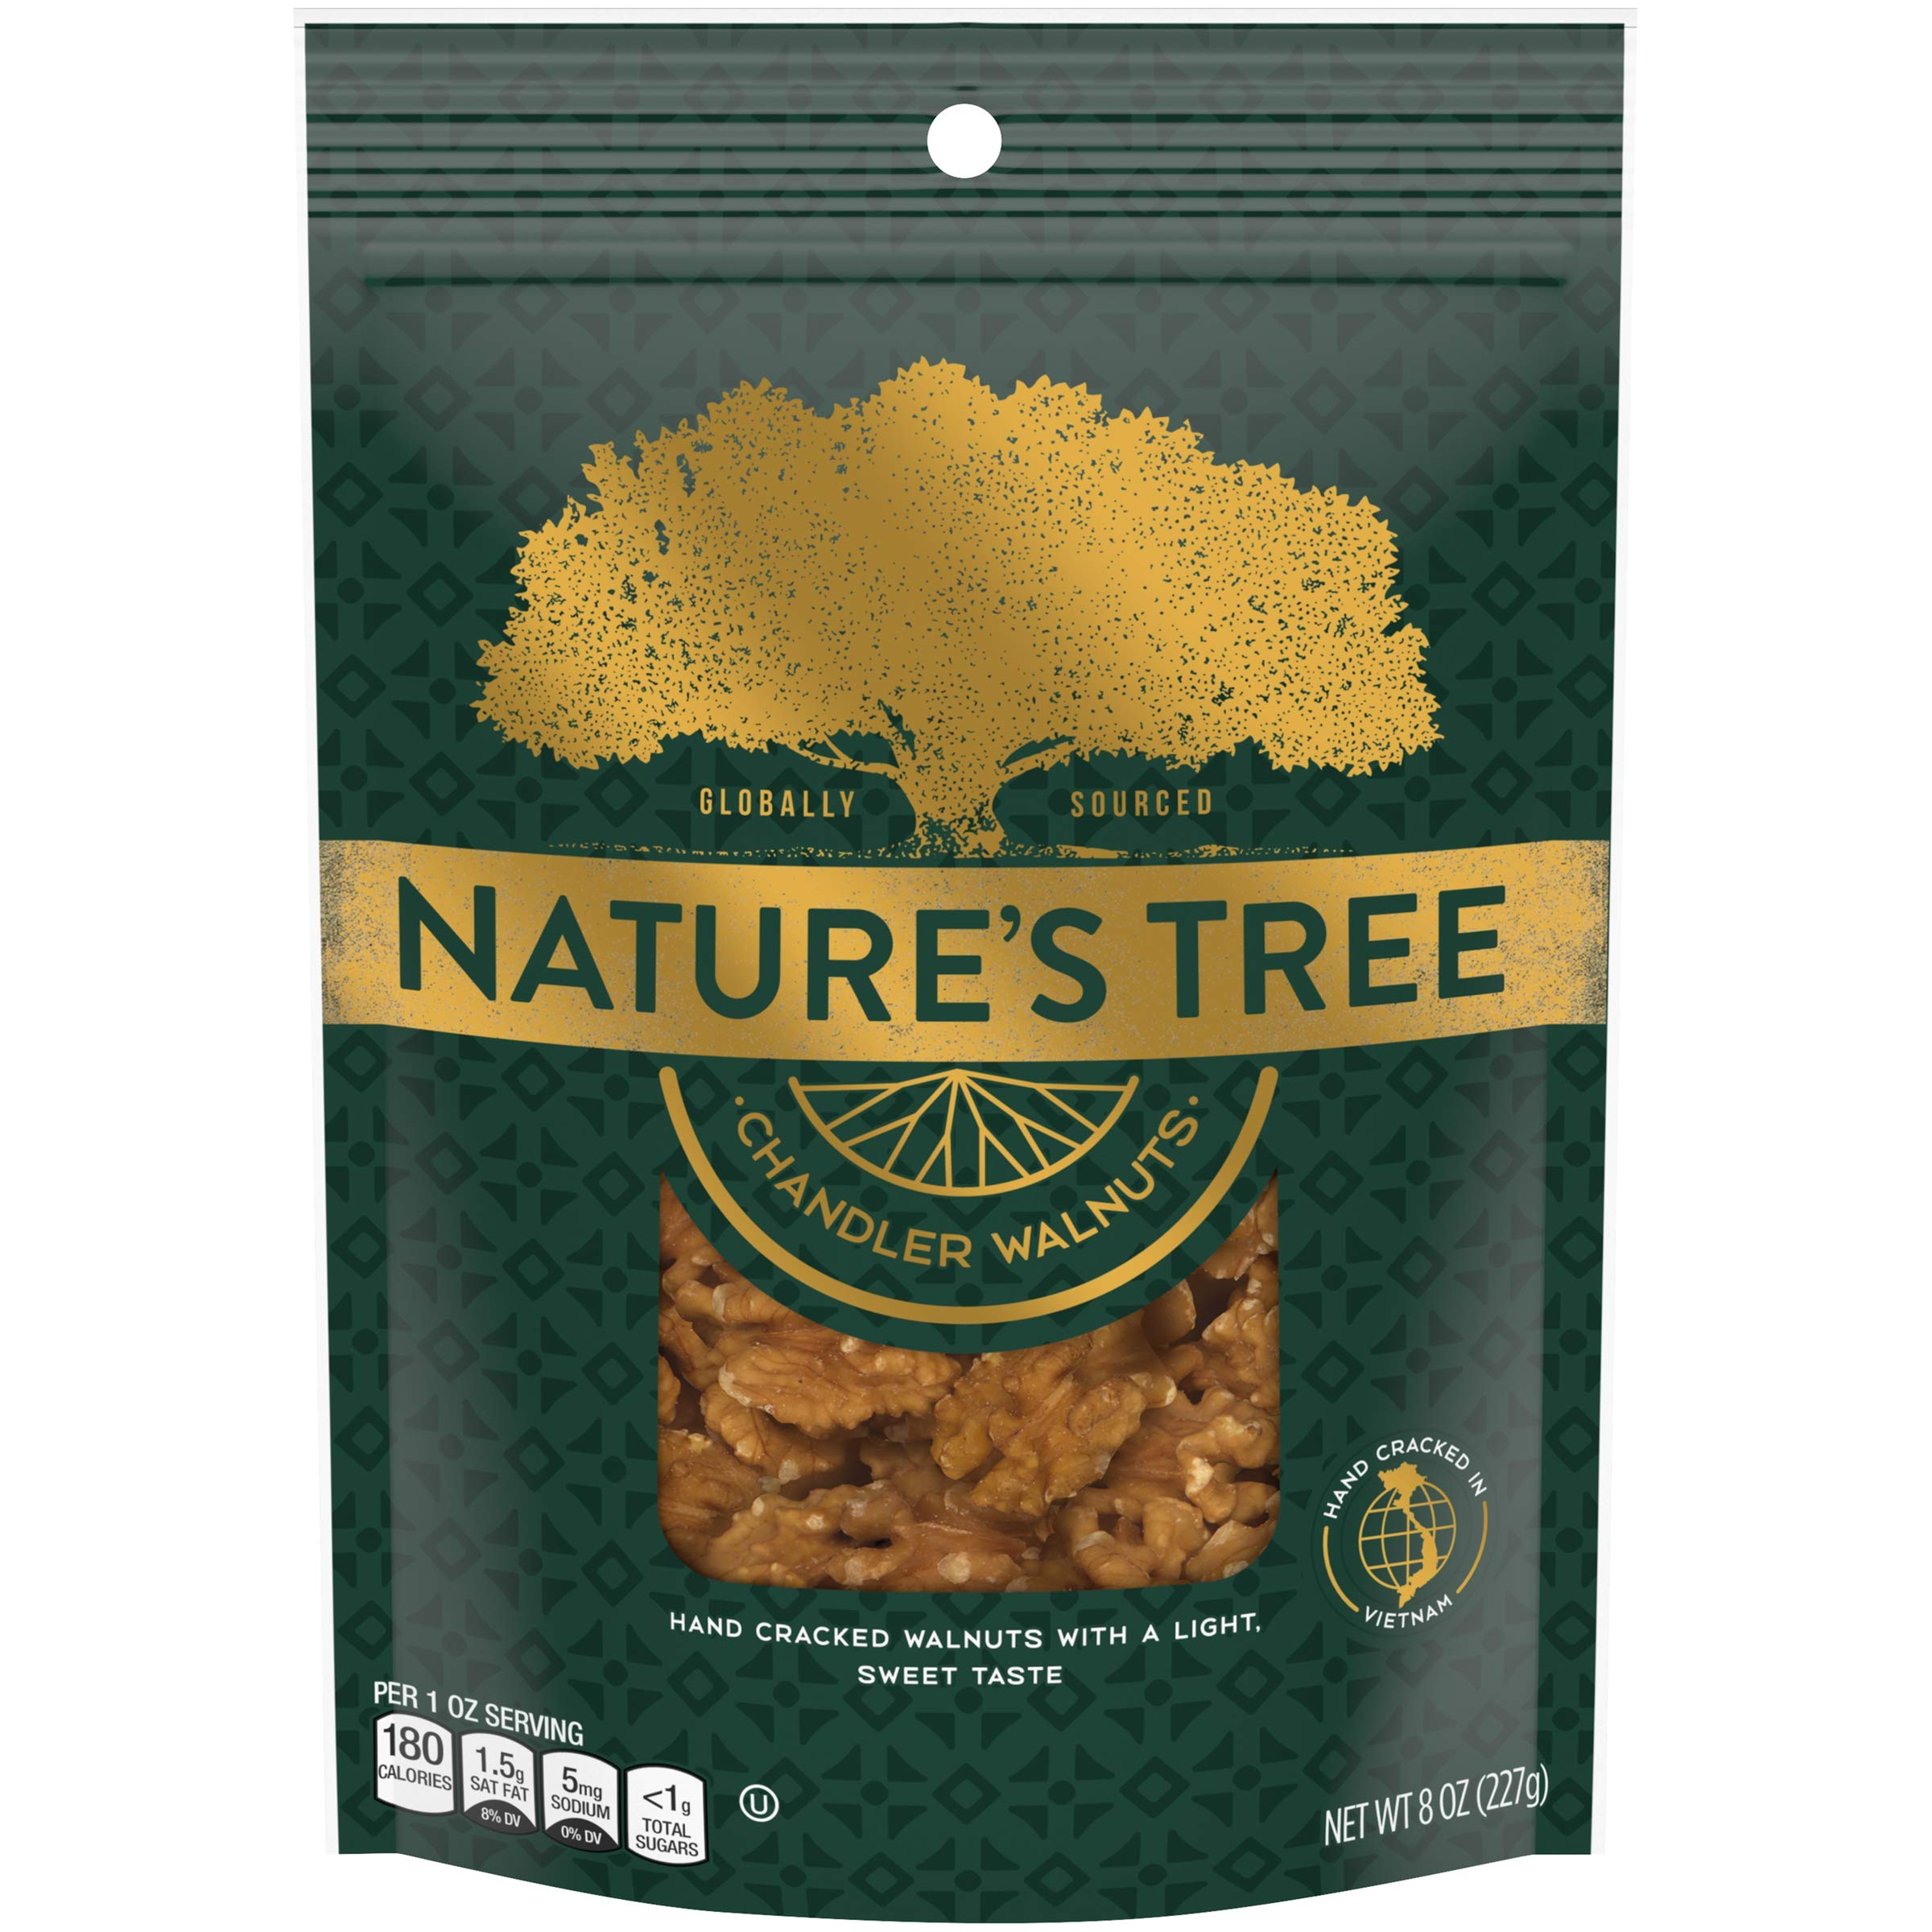 Nature's Tree Chandler Walnuts, 8 oz Bag by Nature's Tree